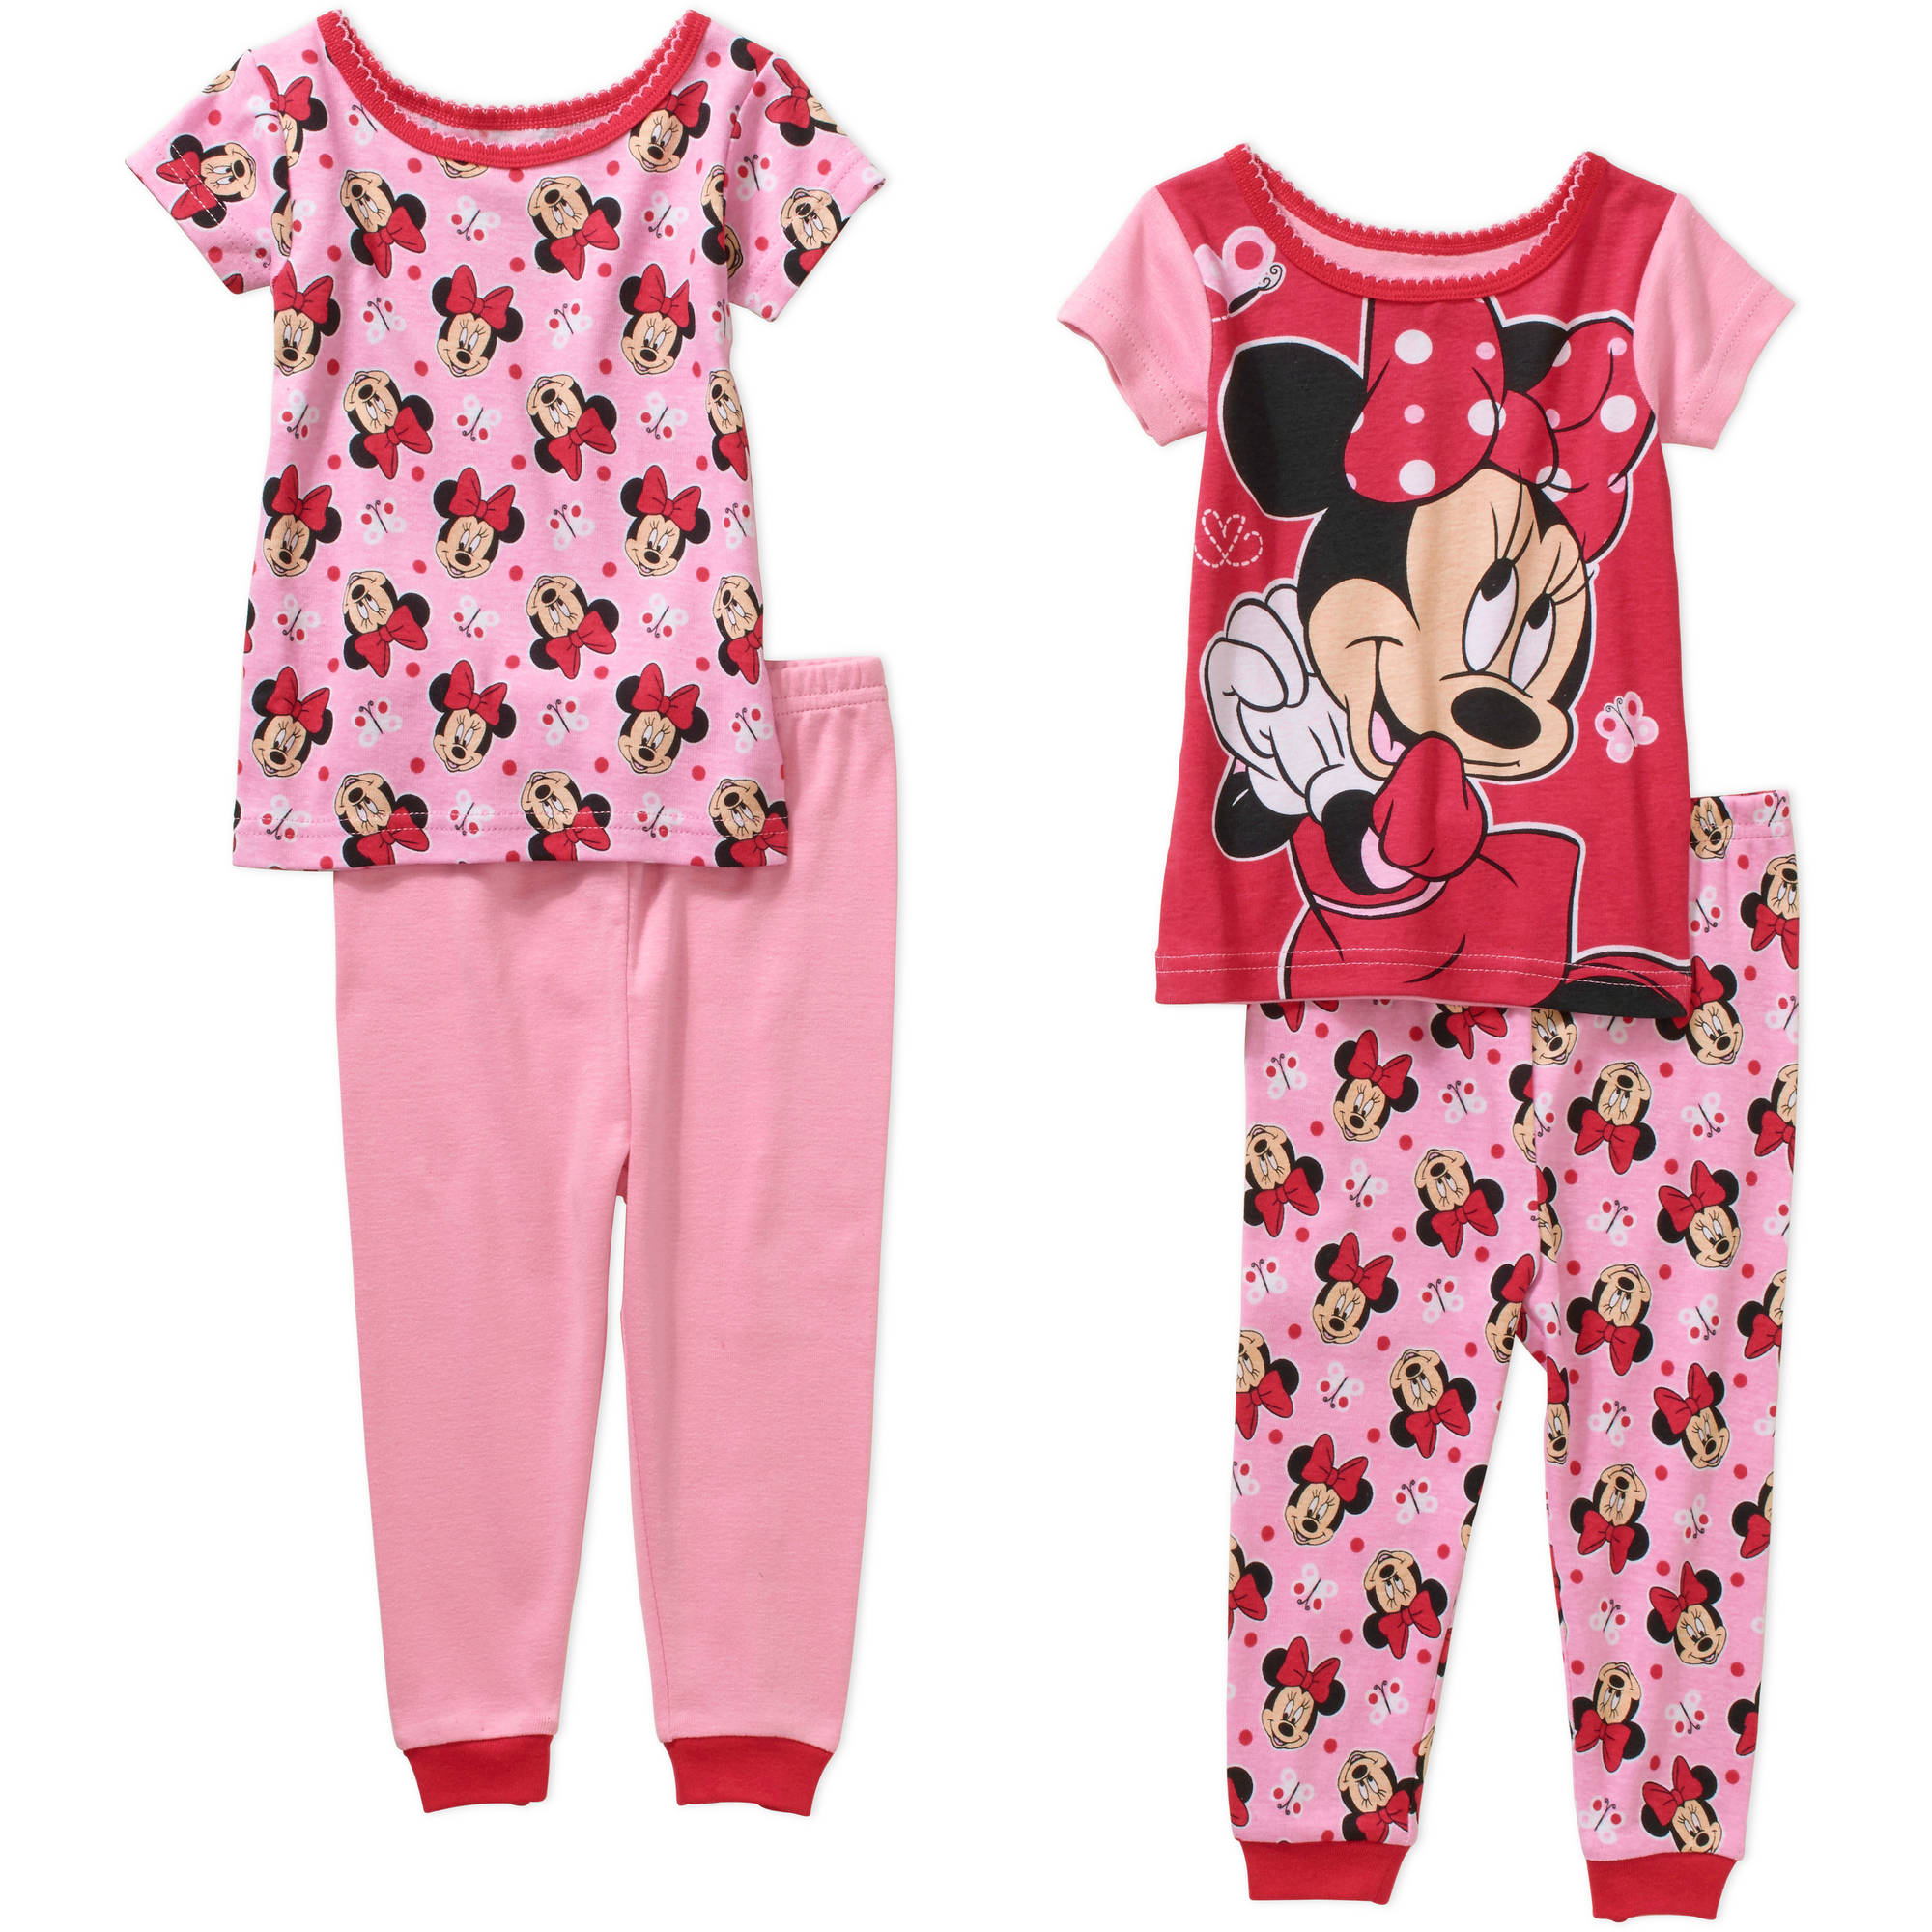 Minnie Mouse Baby Infant Girl Cotton Tight Fit Short Sleeve Pajamas, 4-Pieces